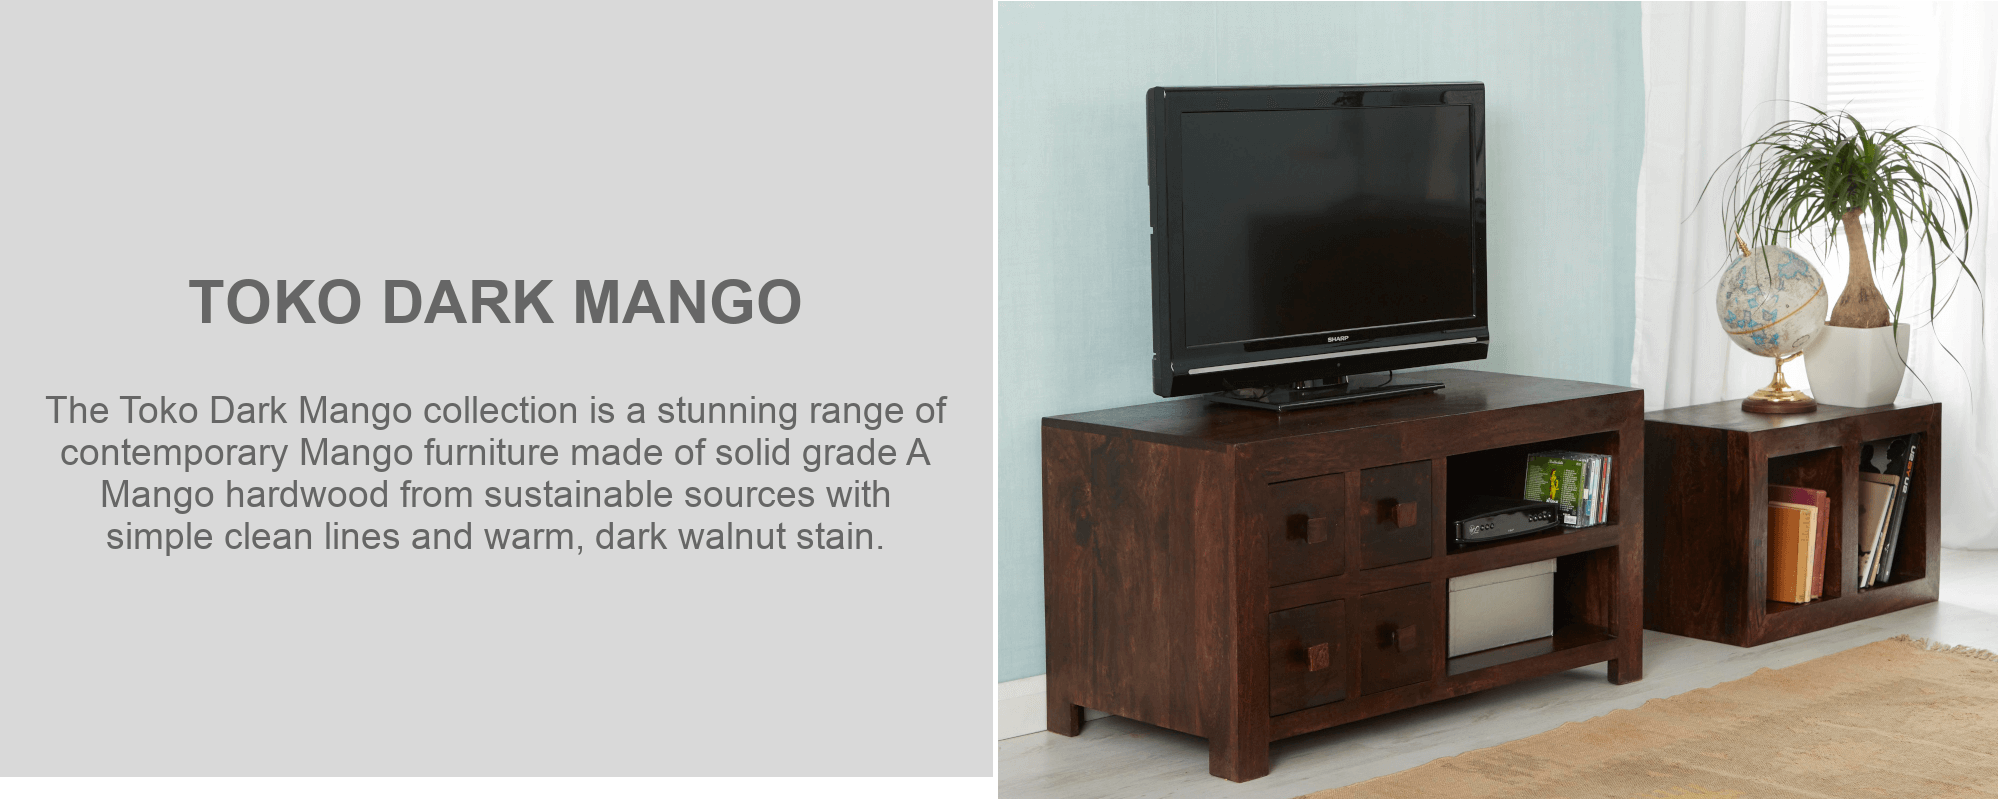 Toko dark mango tv cabinet and side table furniture